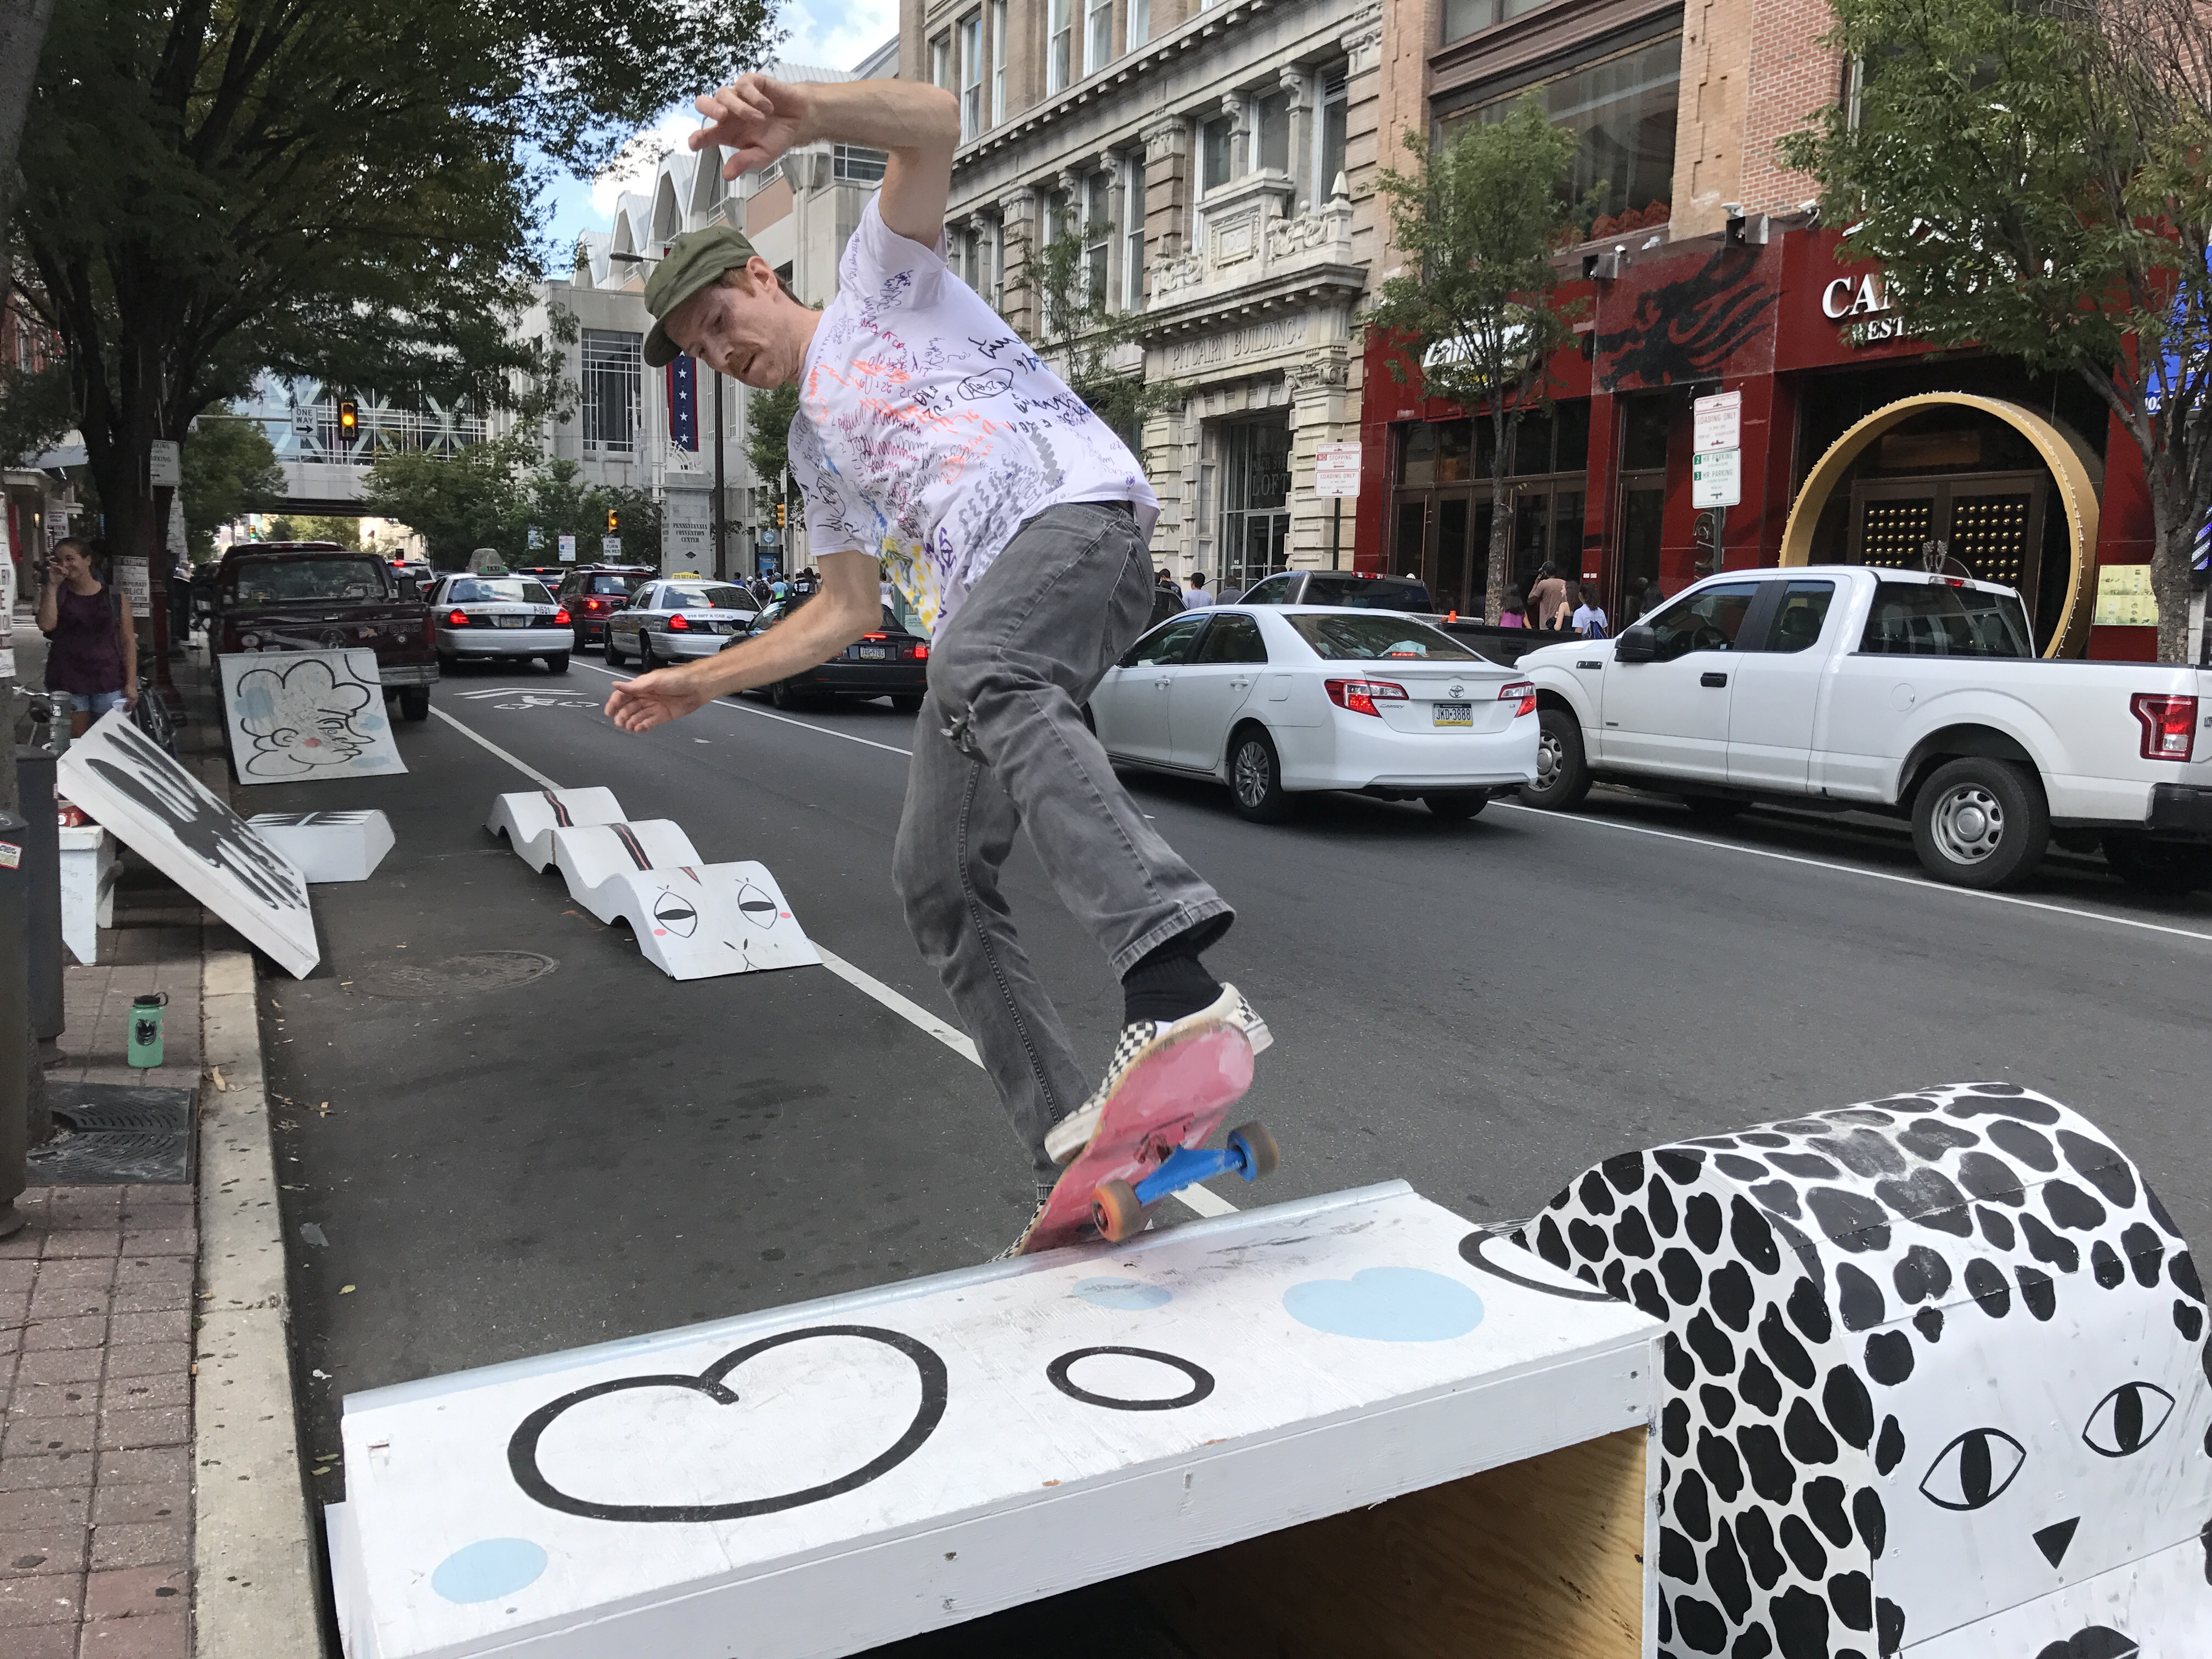 p.p1 {margin: 0.0px 0.0px 0.0px 0.0px; font: 11.0px Calibri}